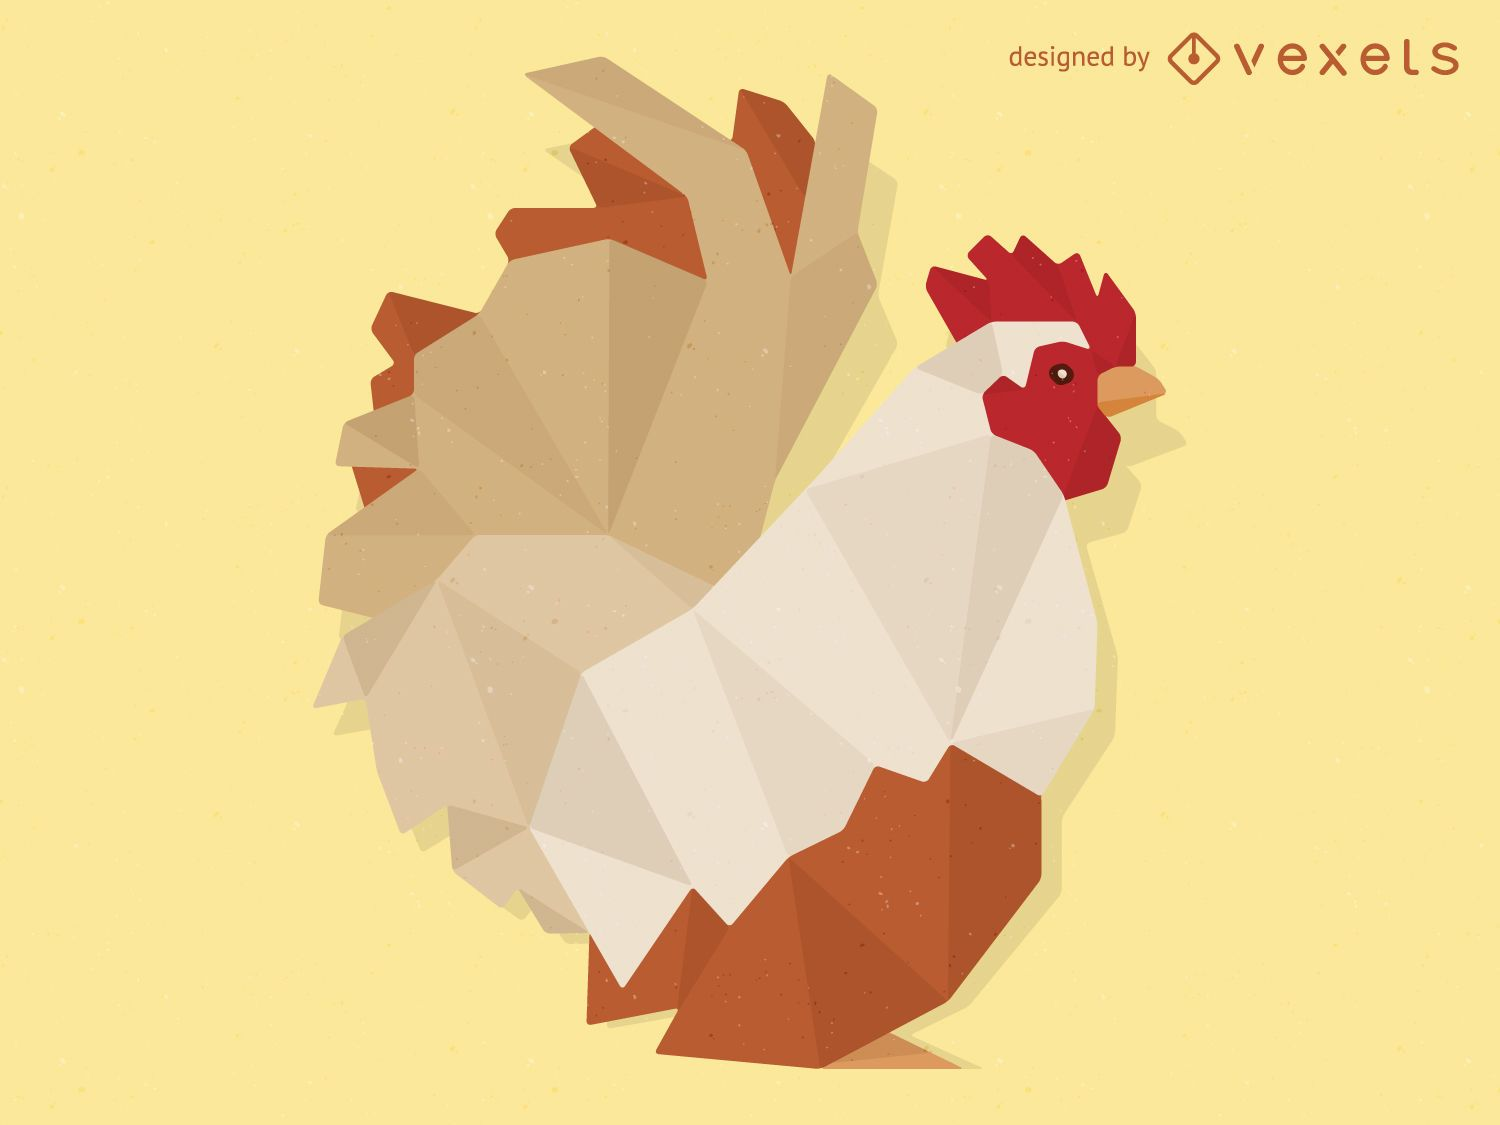 Low poly rooster illustration